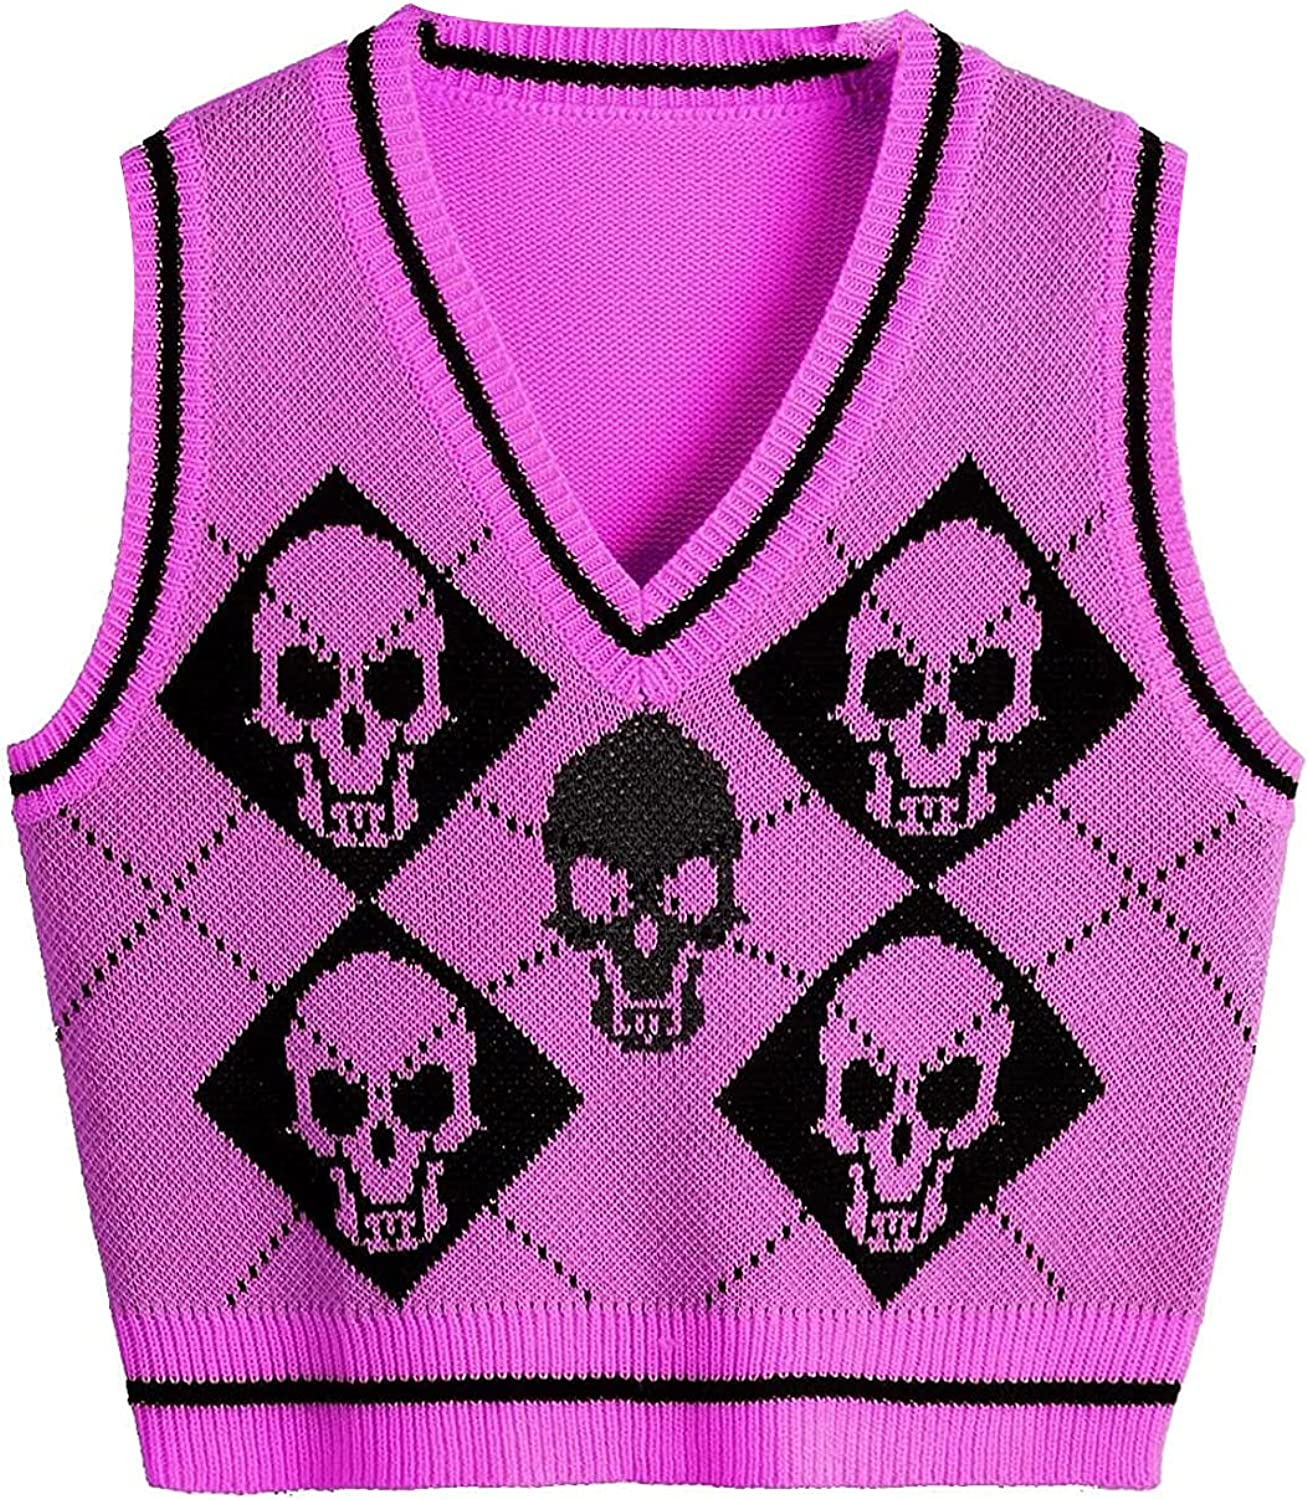 Women Fashion Knitted Vest, Sleeveless Halloween Casual Top Shirt Sweater for Daily Streetwear Fall Autumn Winter